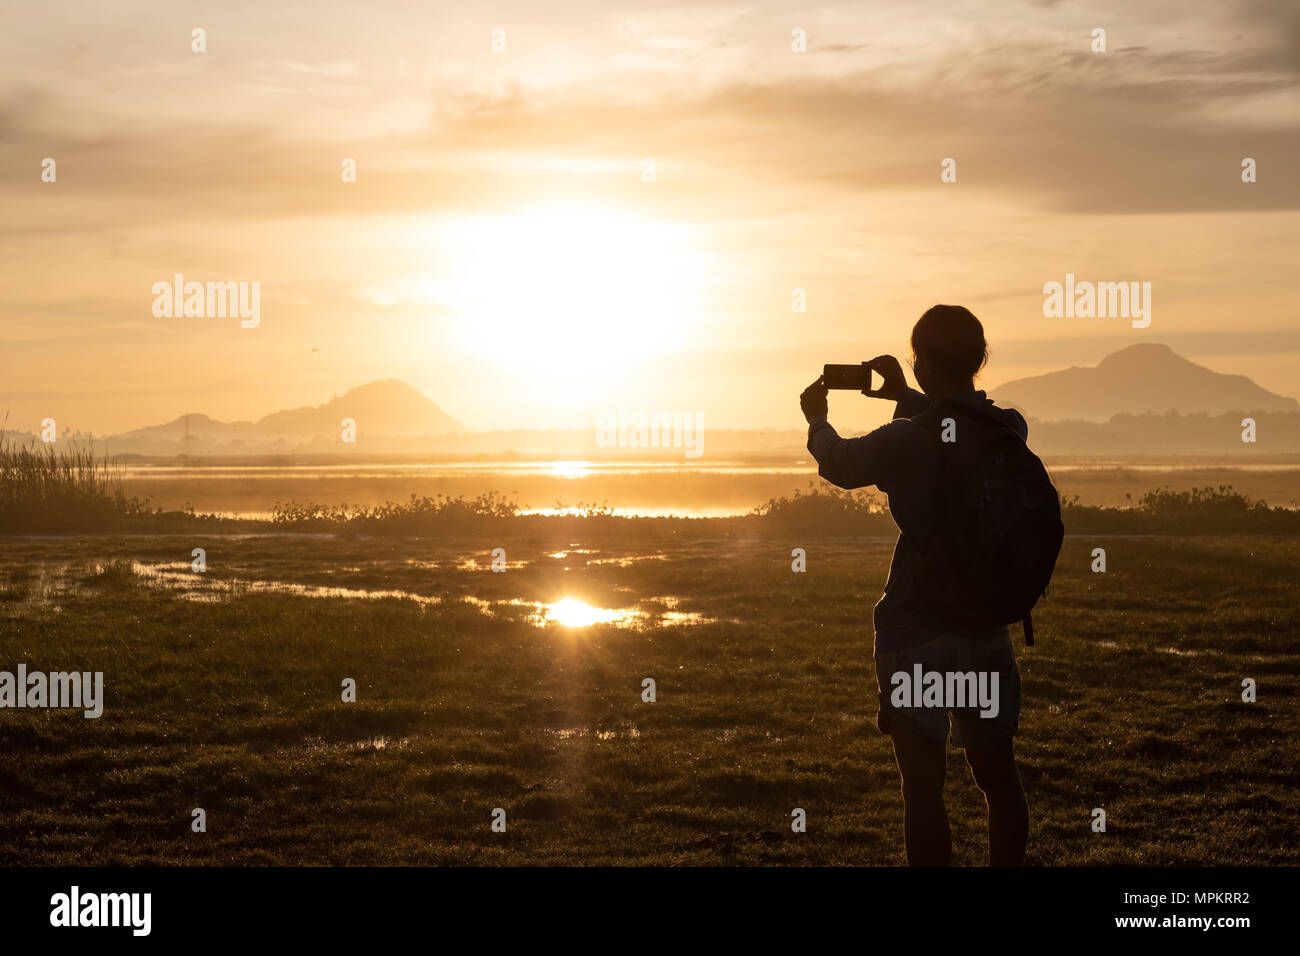 silhouette of a woman holding a smartphone taking pictures outside during sunrise or sunset. Stock Photo